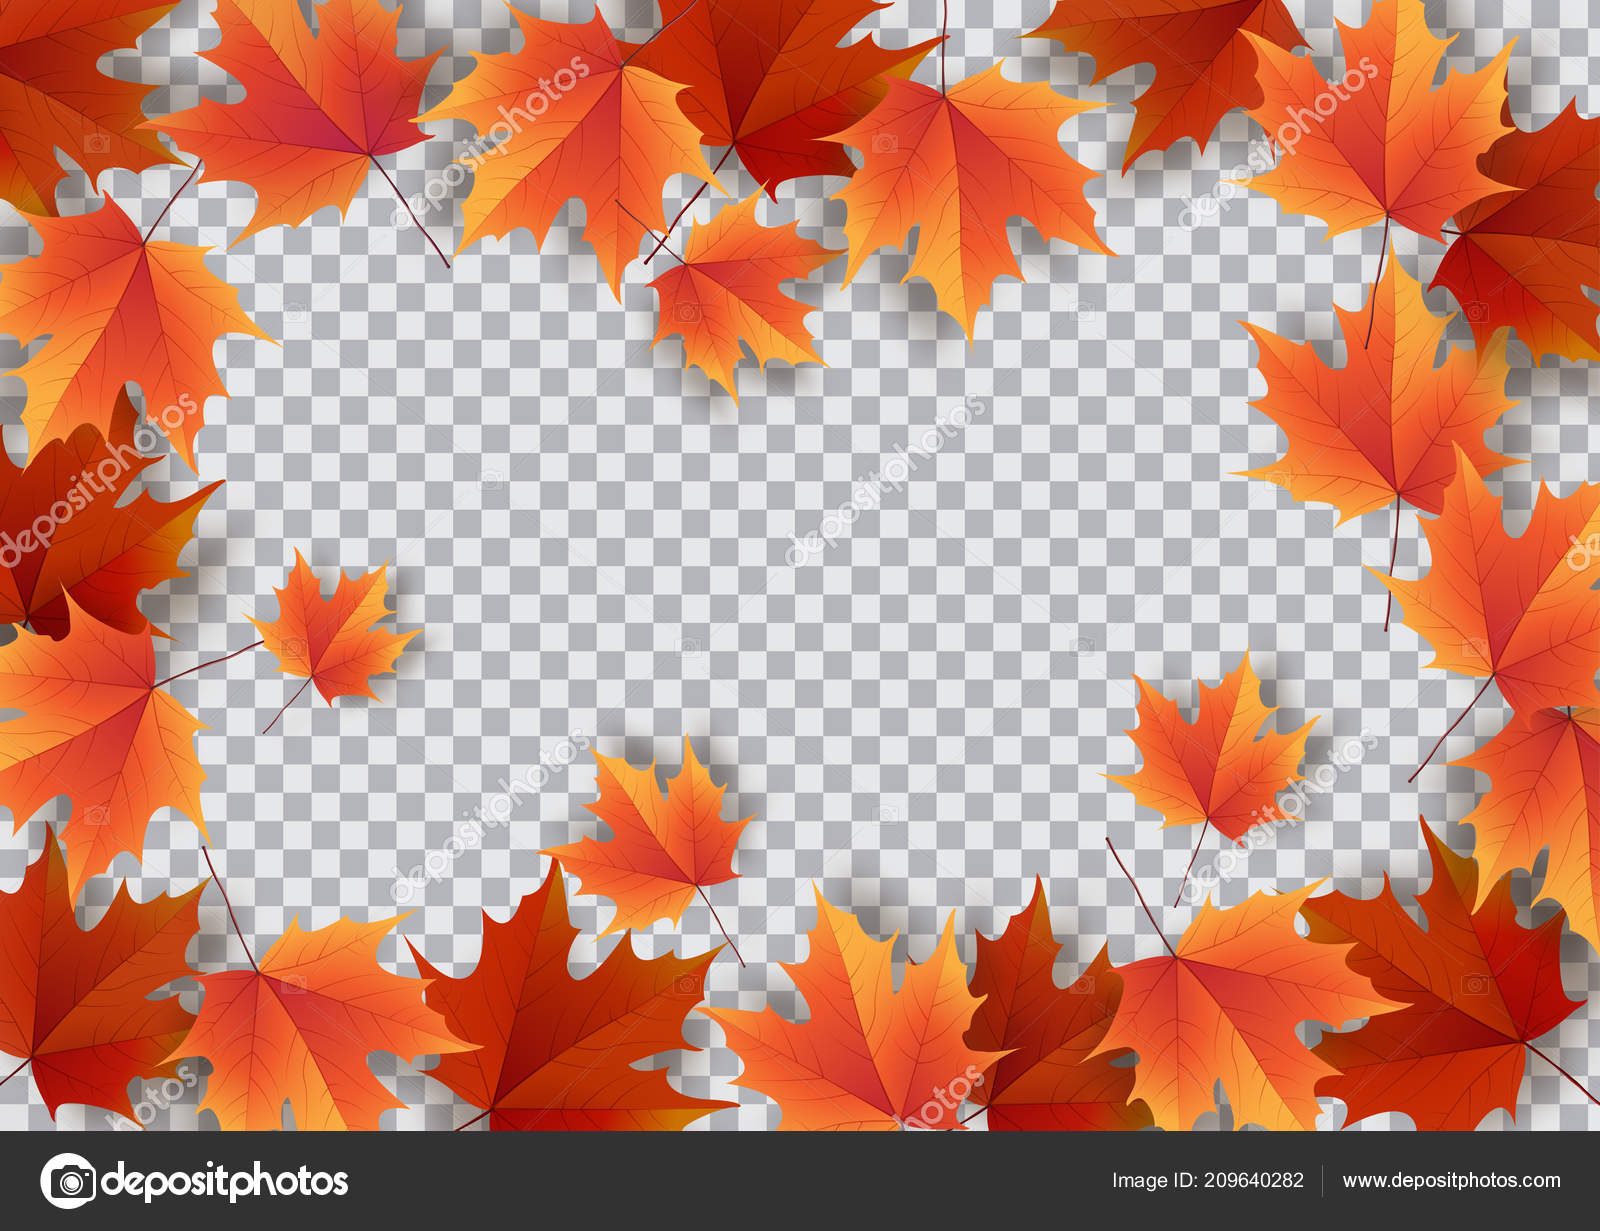 autumn leaves bright colourful autumn oak leaves template for